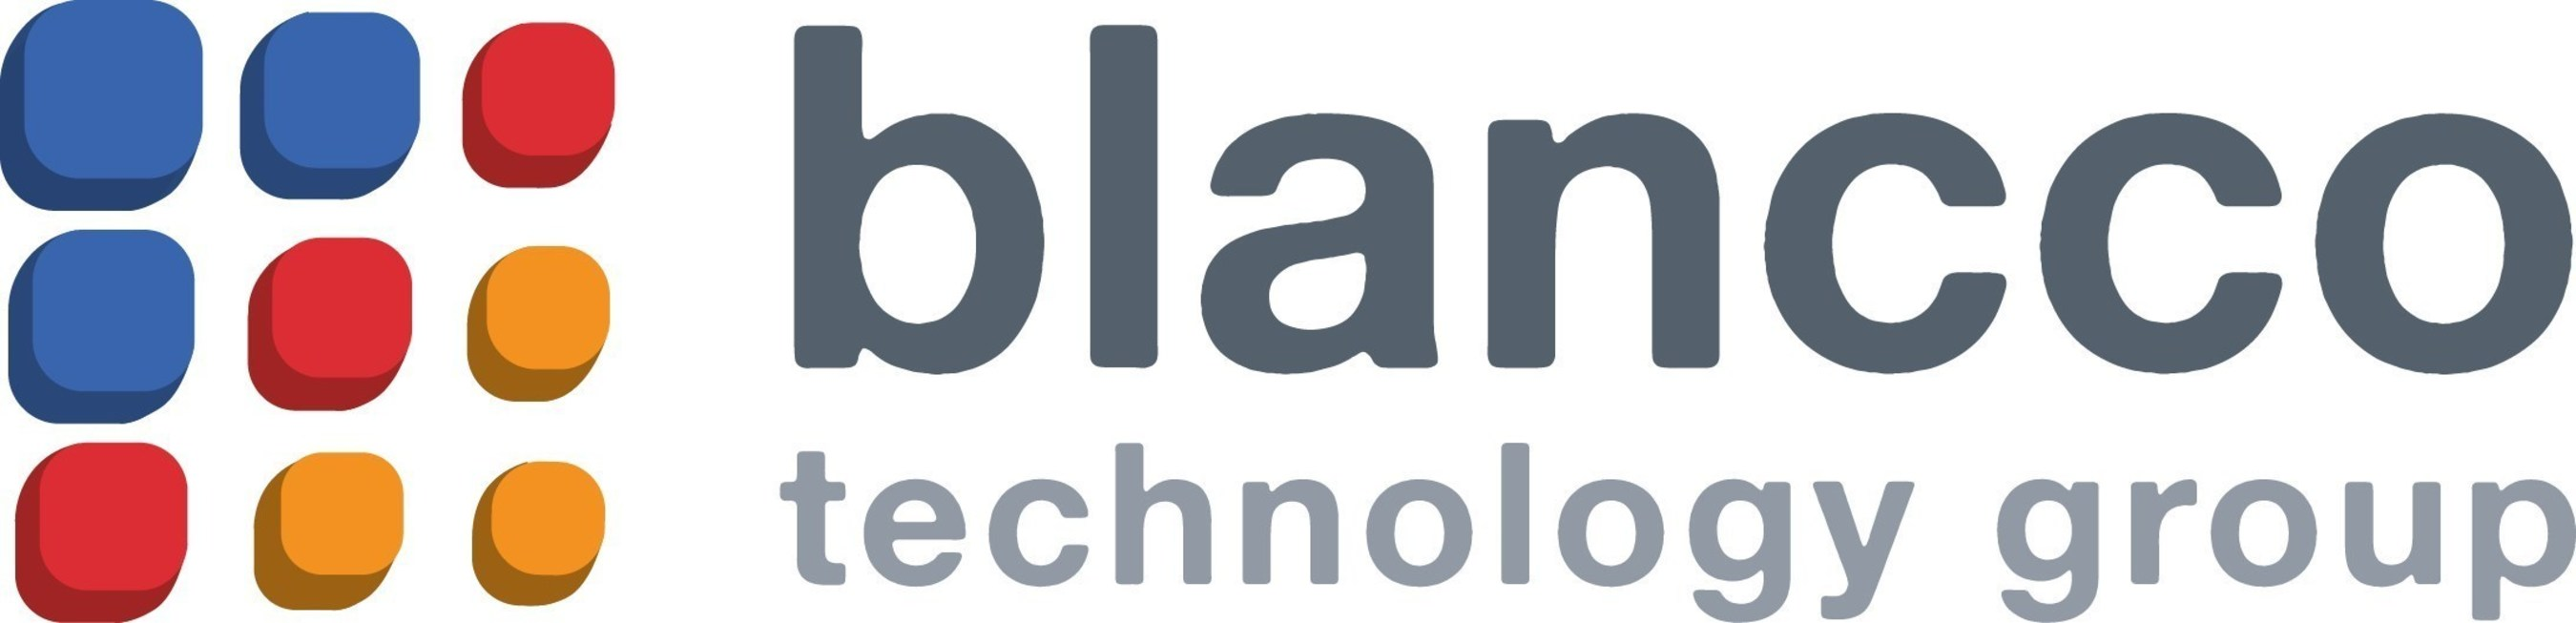 Blancco Technology Group Launches Erasure as a Service (EaaS) Offering Through New Managed Service Provider Partner Program